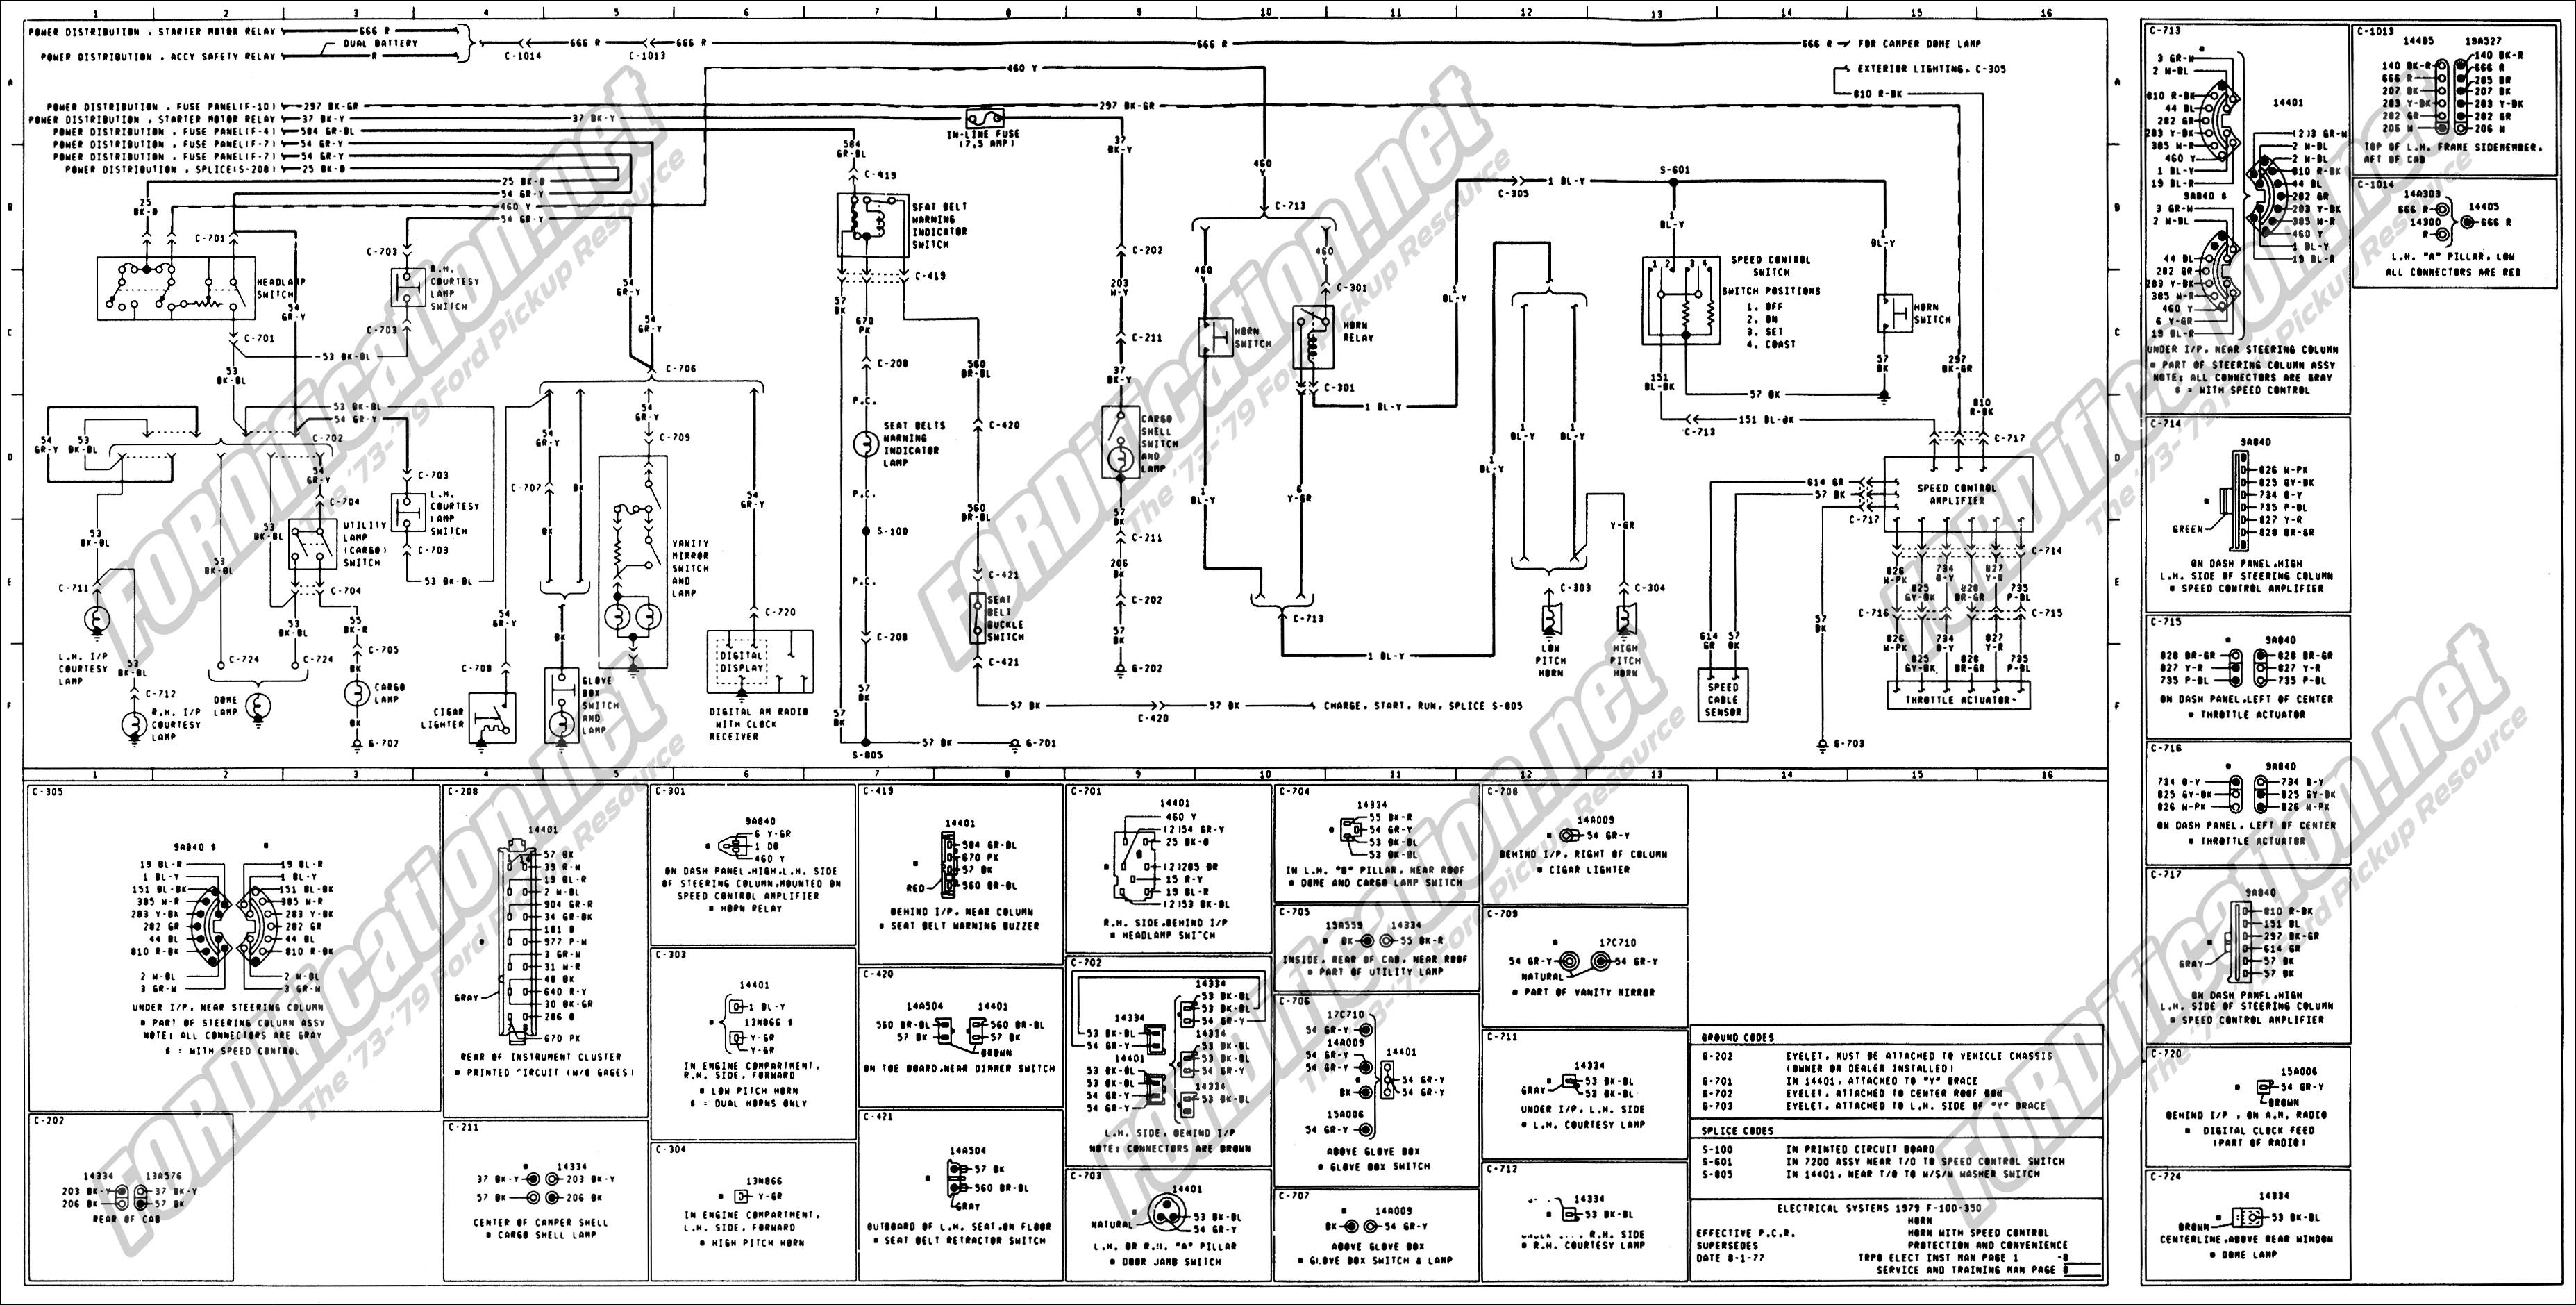 wiring 79master 8of9. 1973 1979 Ford Truck Wiring Diagrams & Schematics  FORDification from ford f150 ...